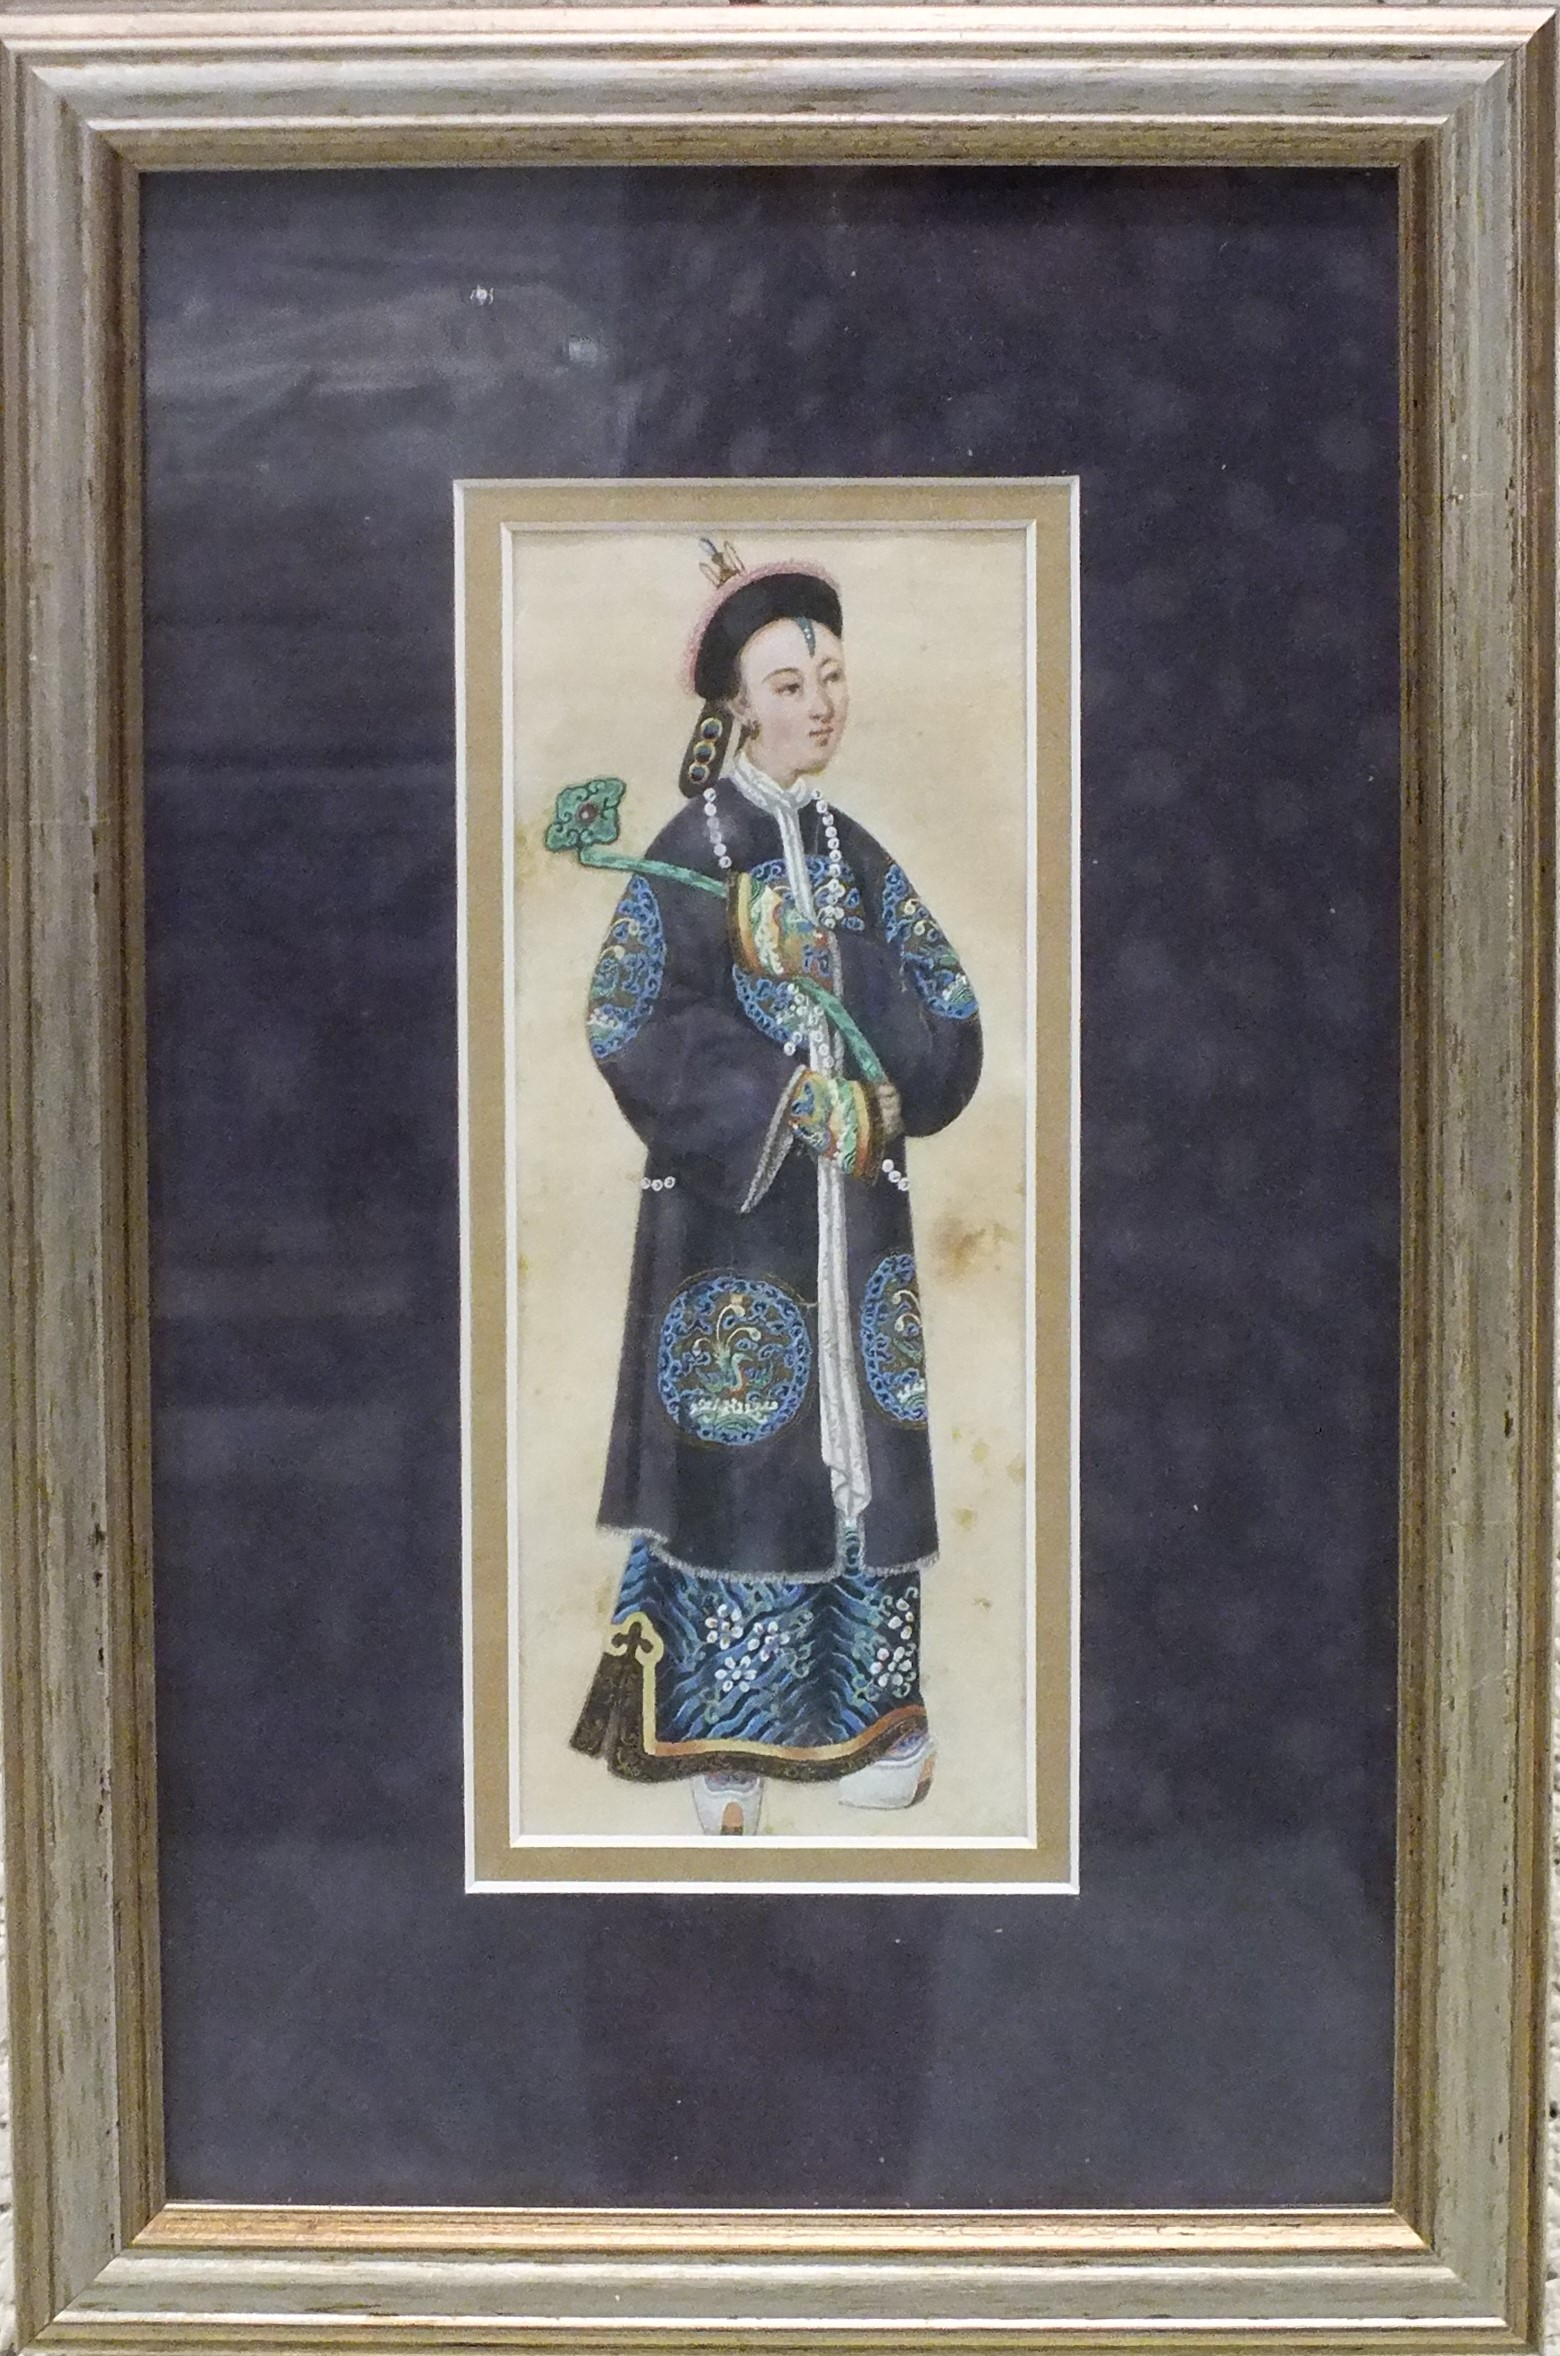 A late-19th century rice paper watercolour depicting a young man in traditional costume, wearing